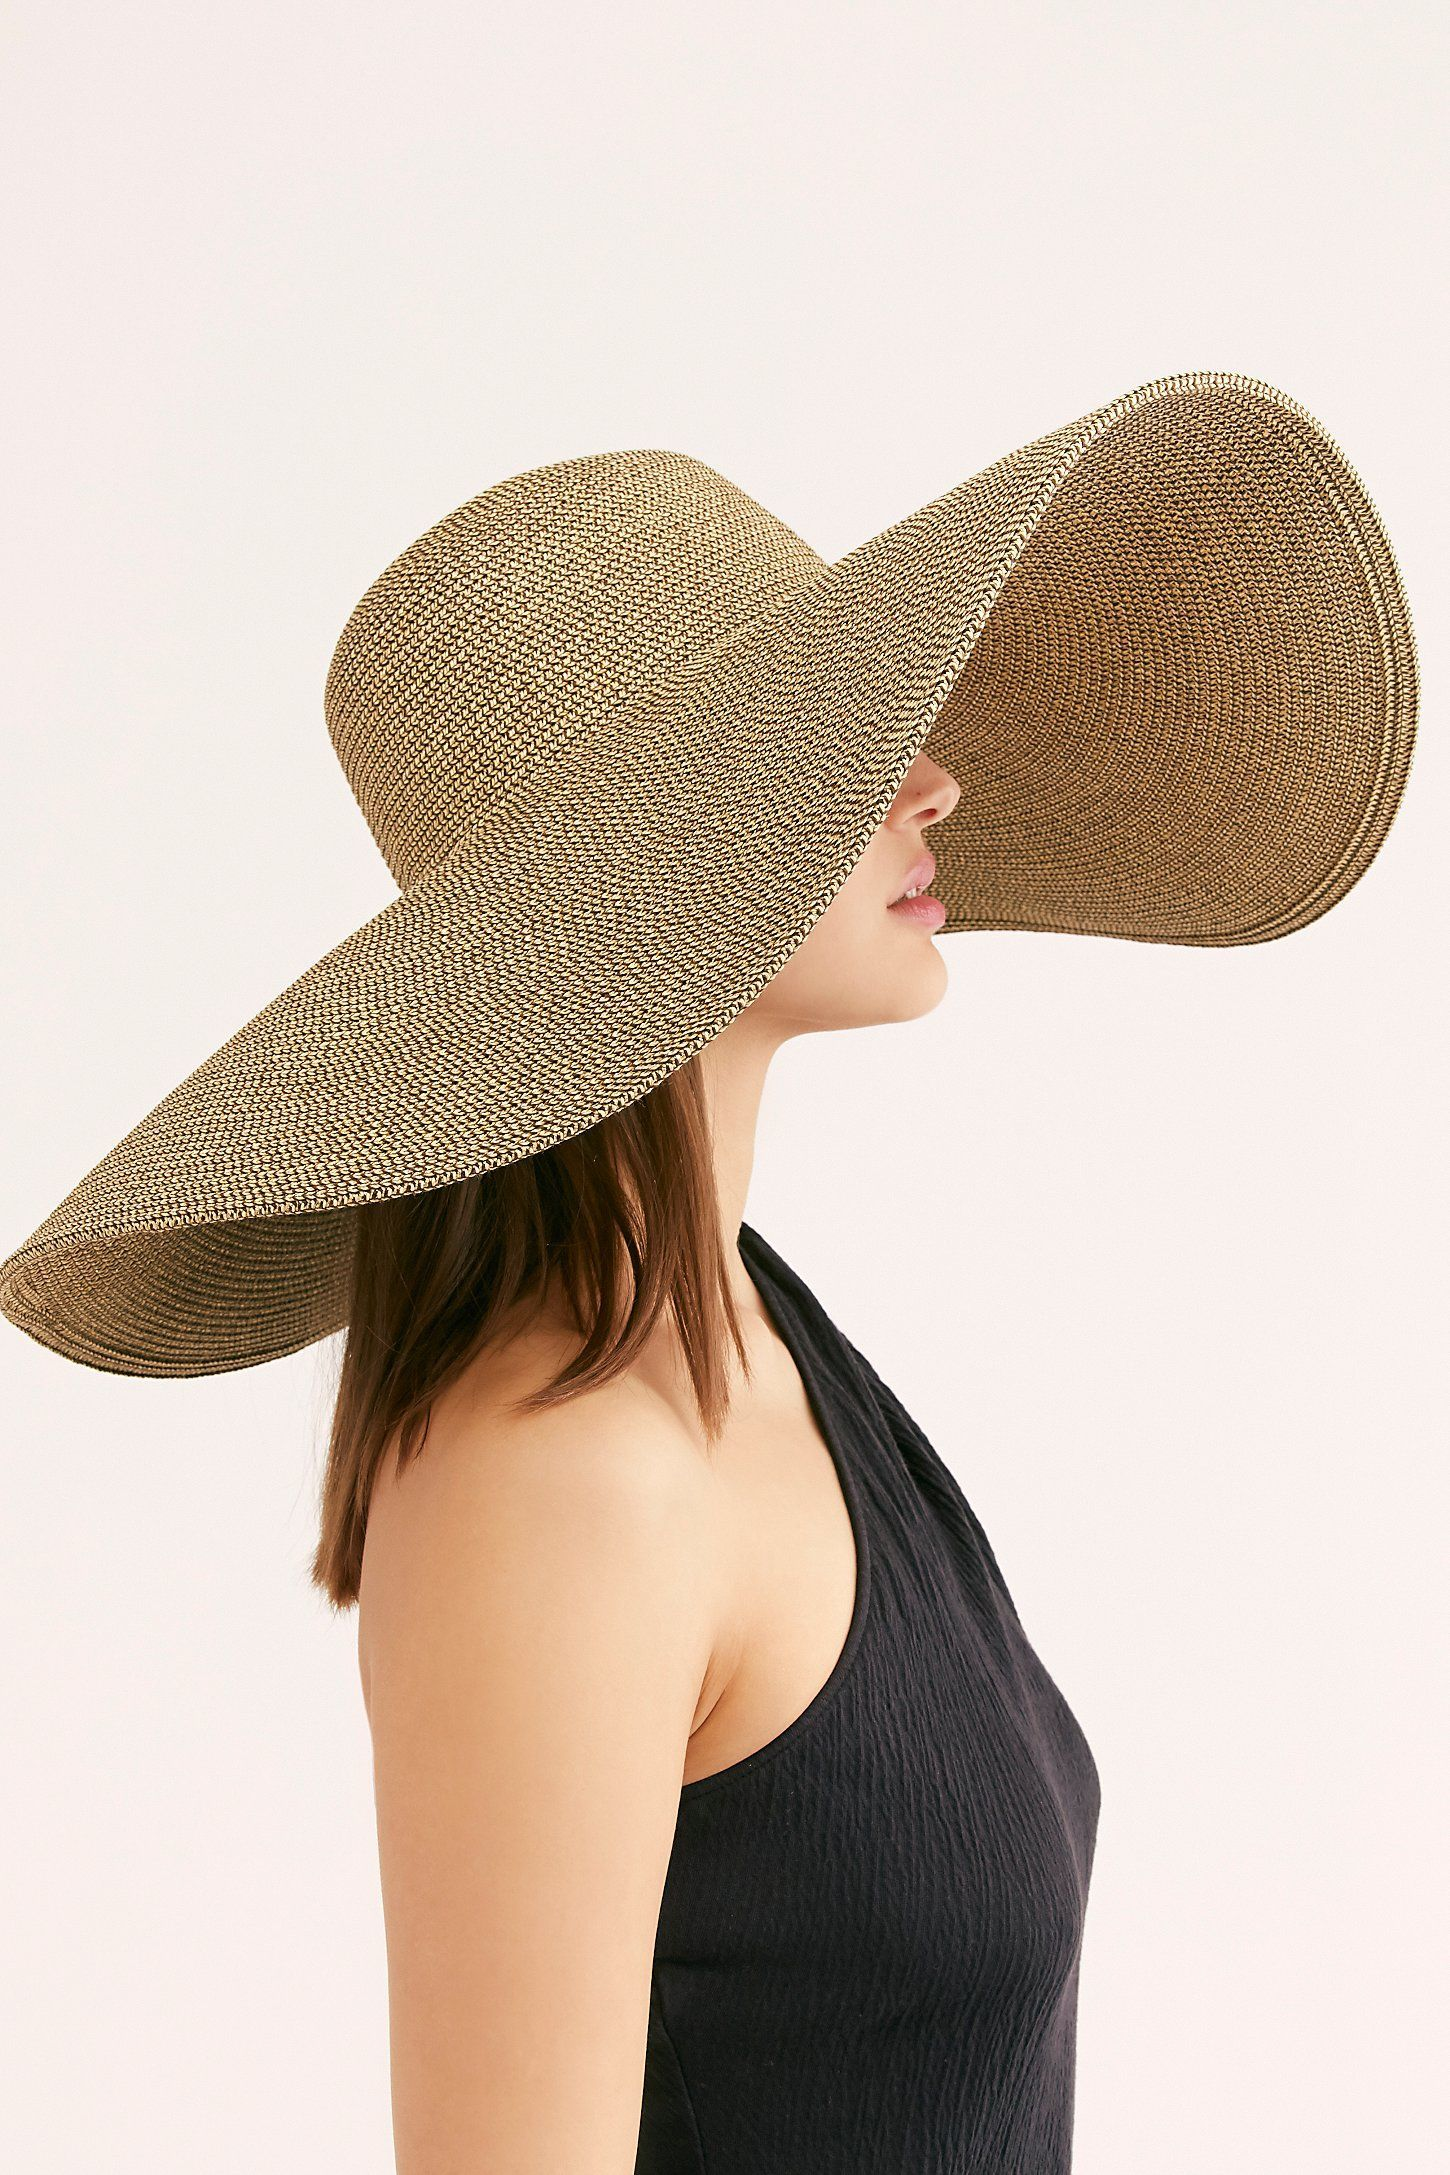 Shady Character Packable Wide Brim Hat Free People Check Us Out For Unique Designer Quality Hat Wide Brim Hat Wide Brim Hat Summer Large Brim Hat